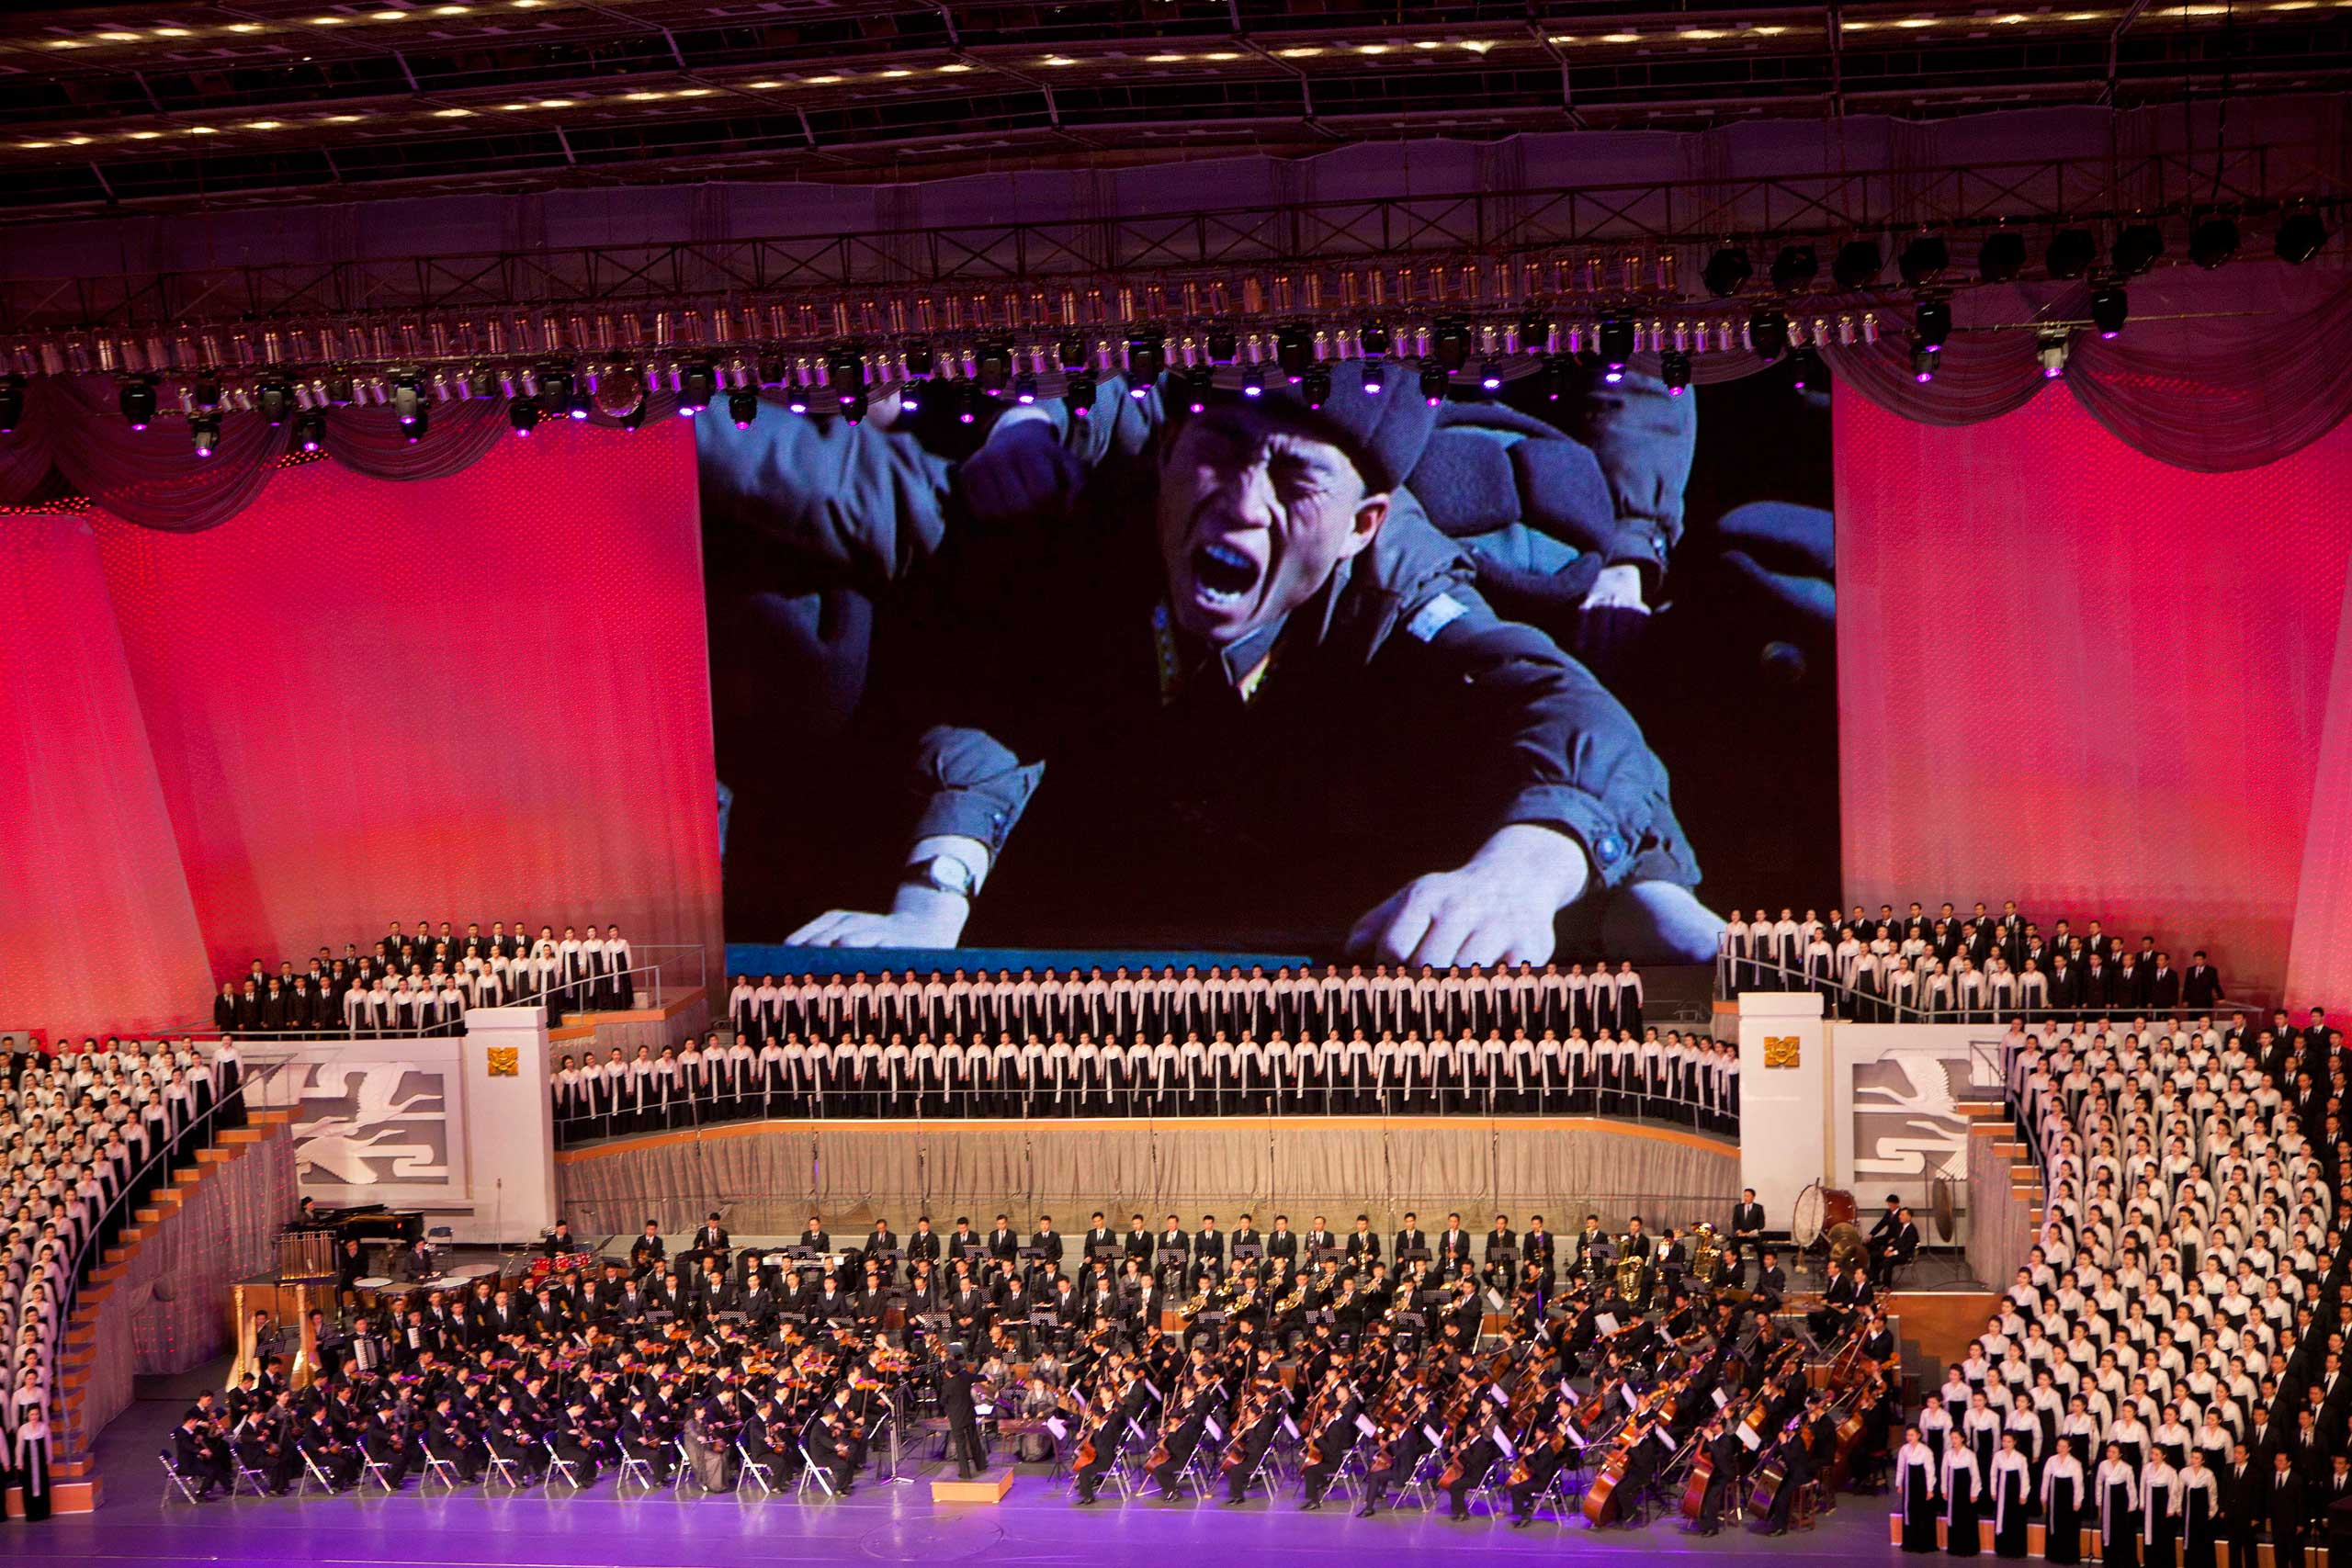 Feb. 16, 2012. A large screen shows video, recorded during the period of mourning following the death of late North Korean leader Kim Jong Il, during a concert in Pyongyang to commemorate his death and what would have been his 70th birthday.